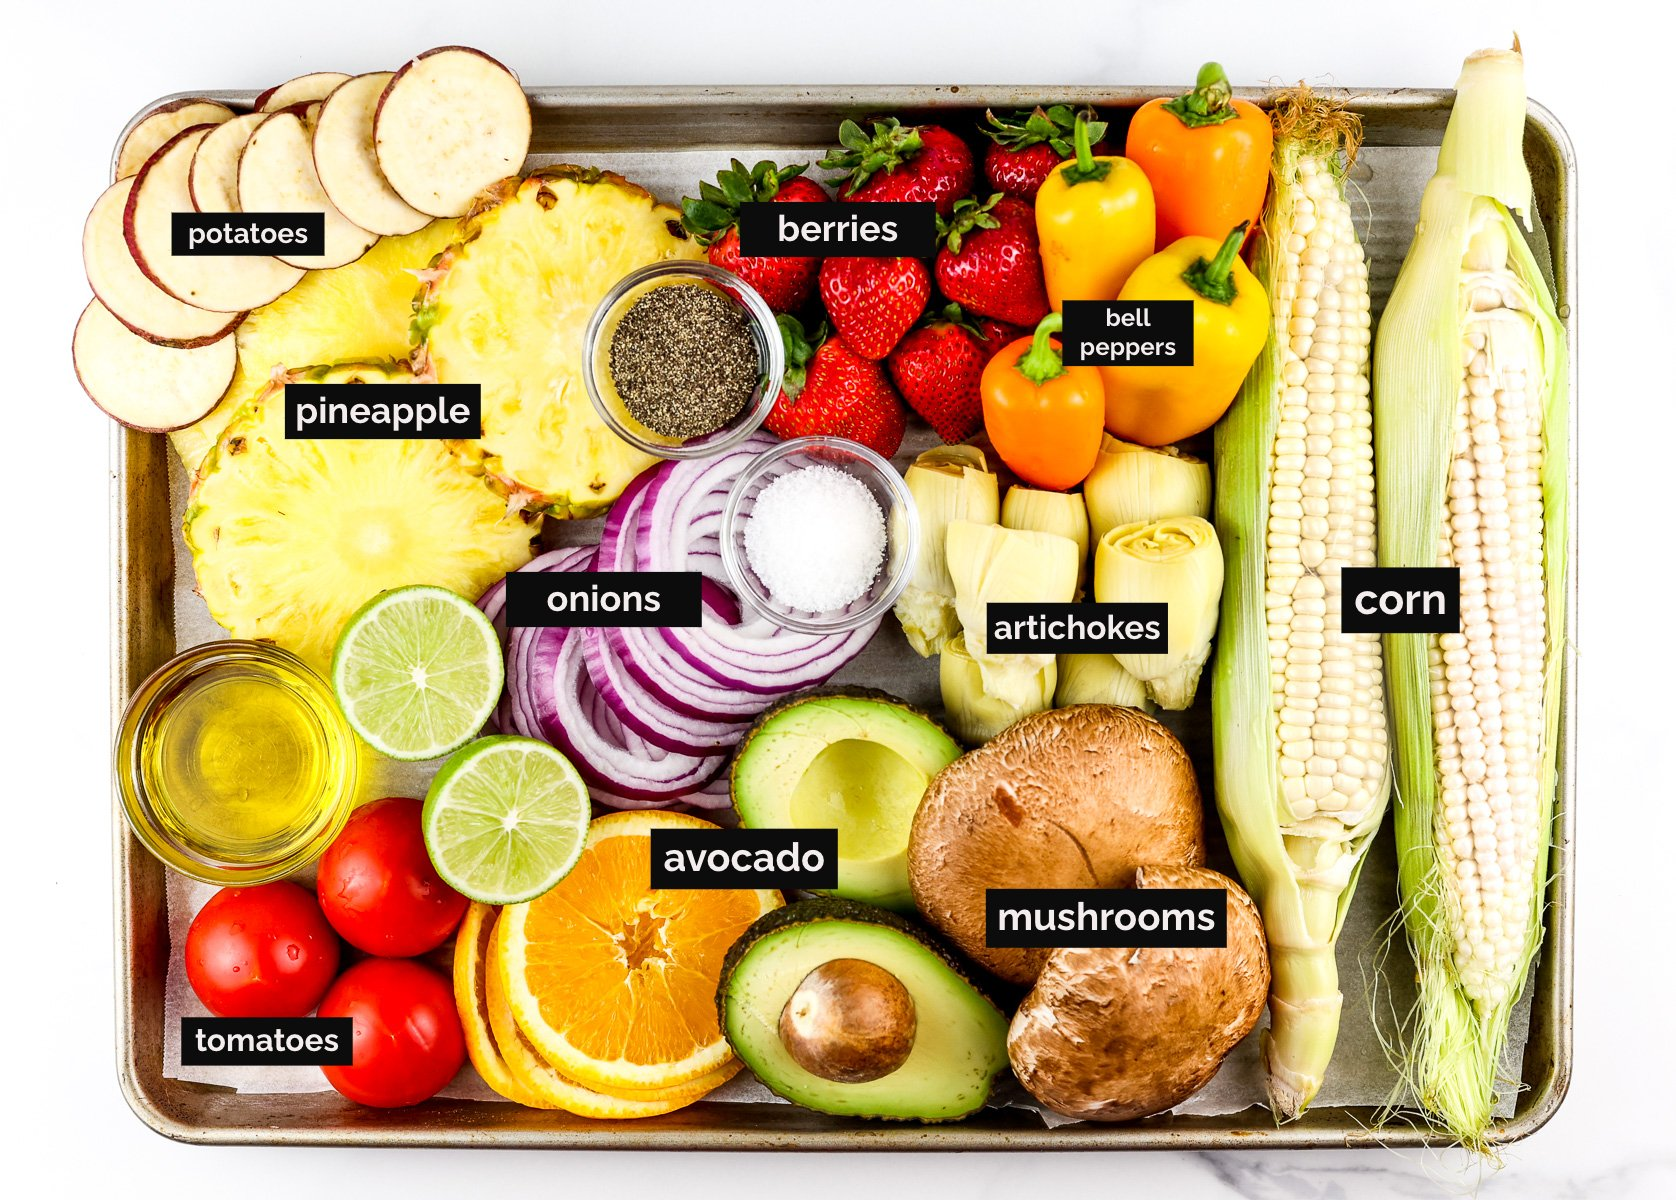 Baking sheet filled with a variety of produce.